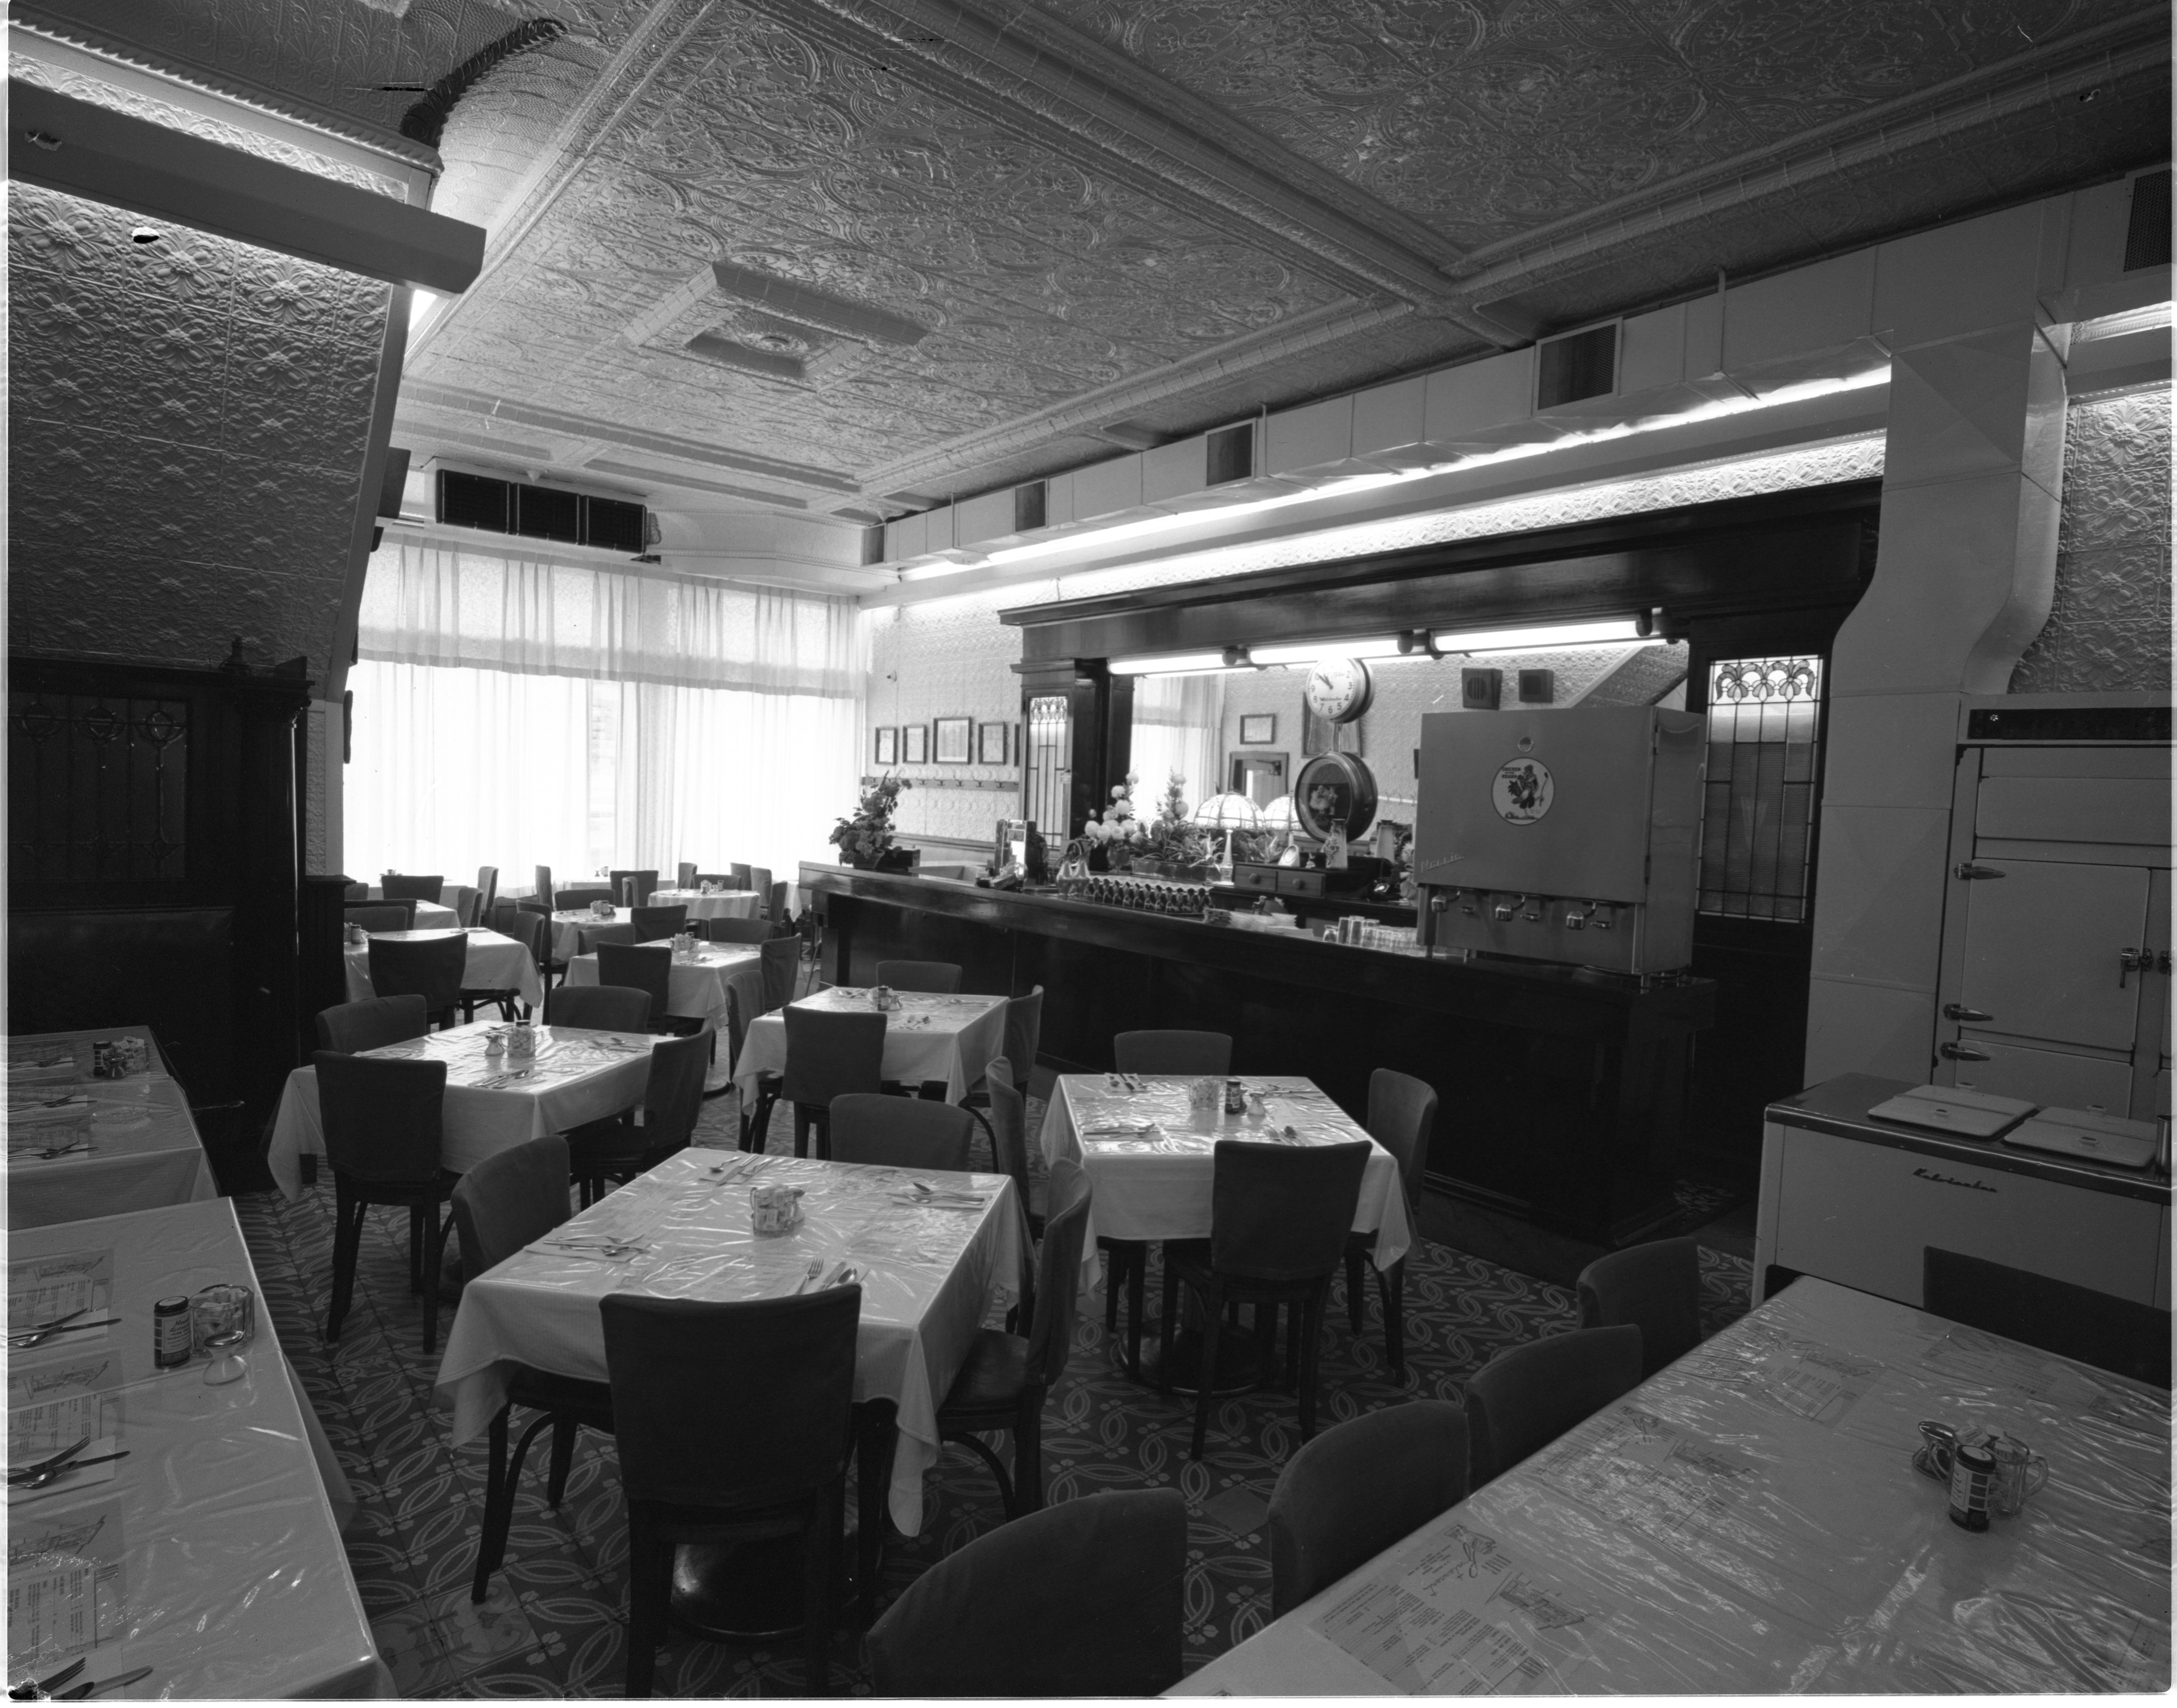 Interior Of Haab's Restaurant, 18 W. Michigan Avenue, Ypsilanti - November 1961 image